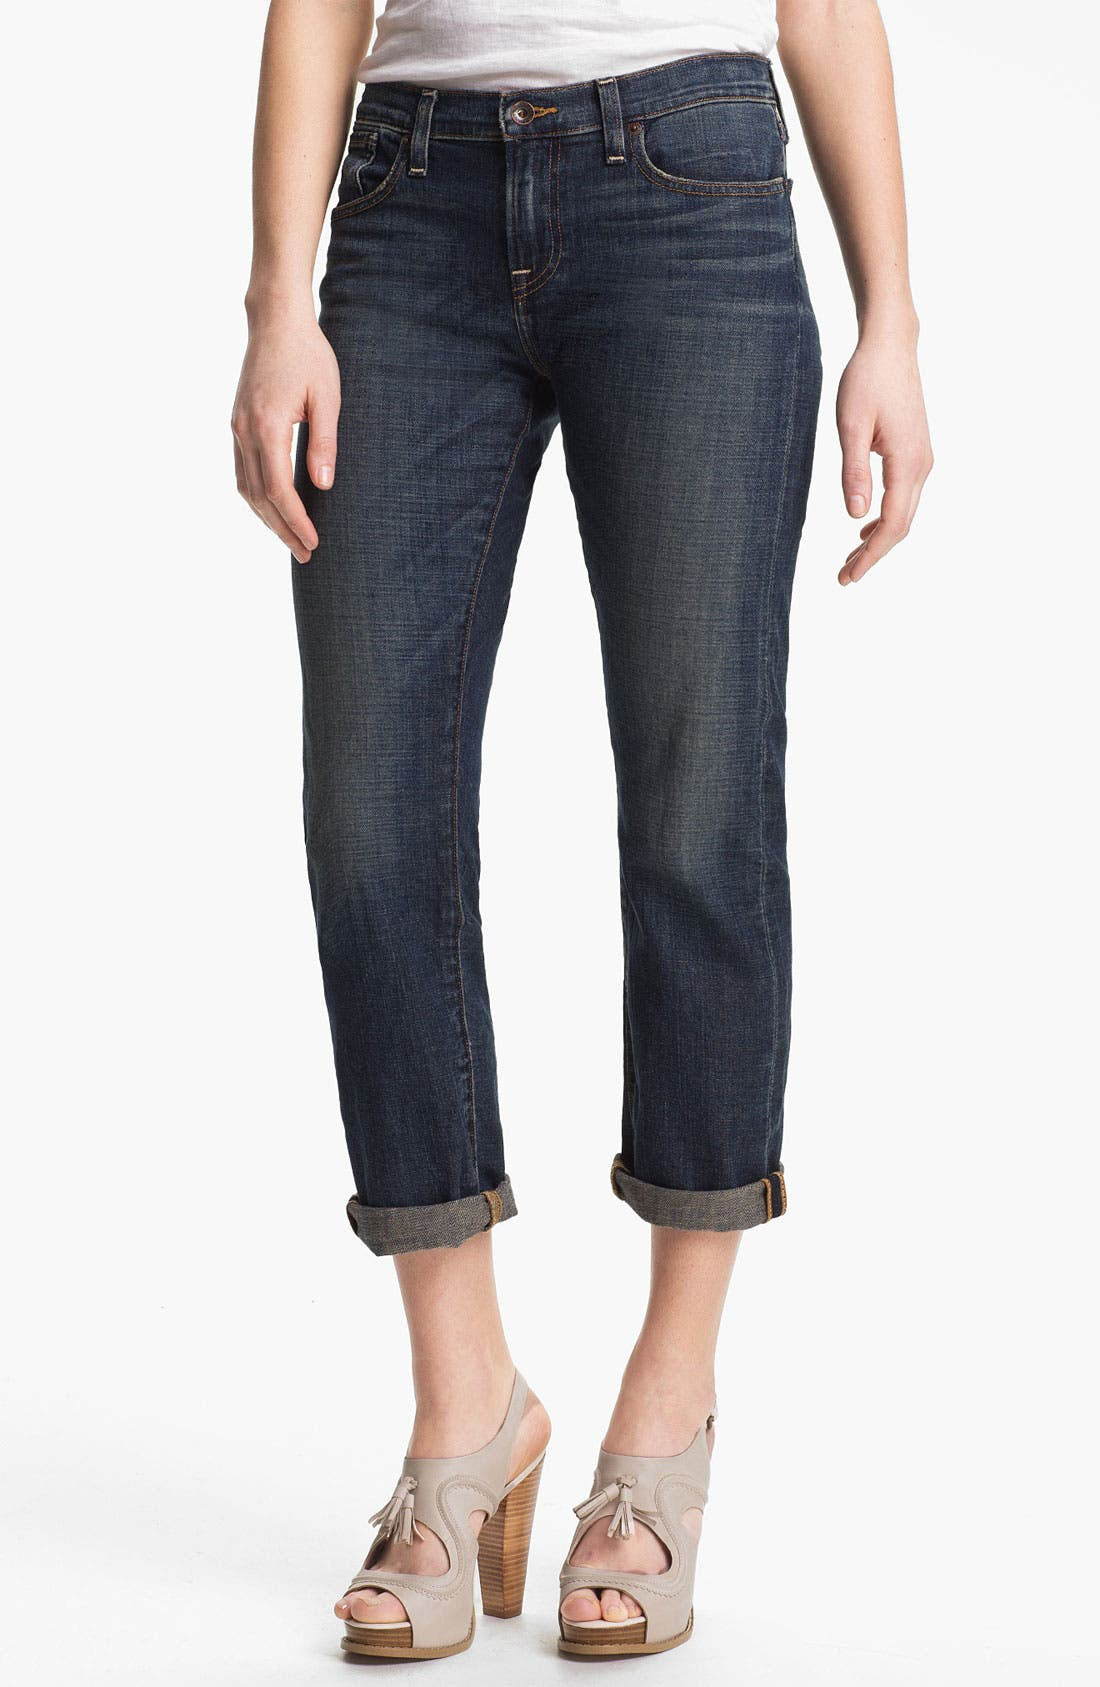 Alternate Image 1 Selected - Lucky Brand 'Sienna' Tomboy Crop Jeans